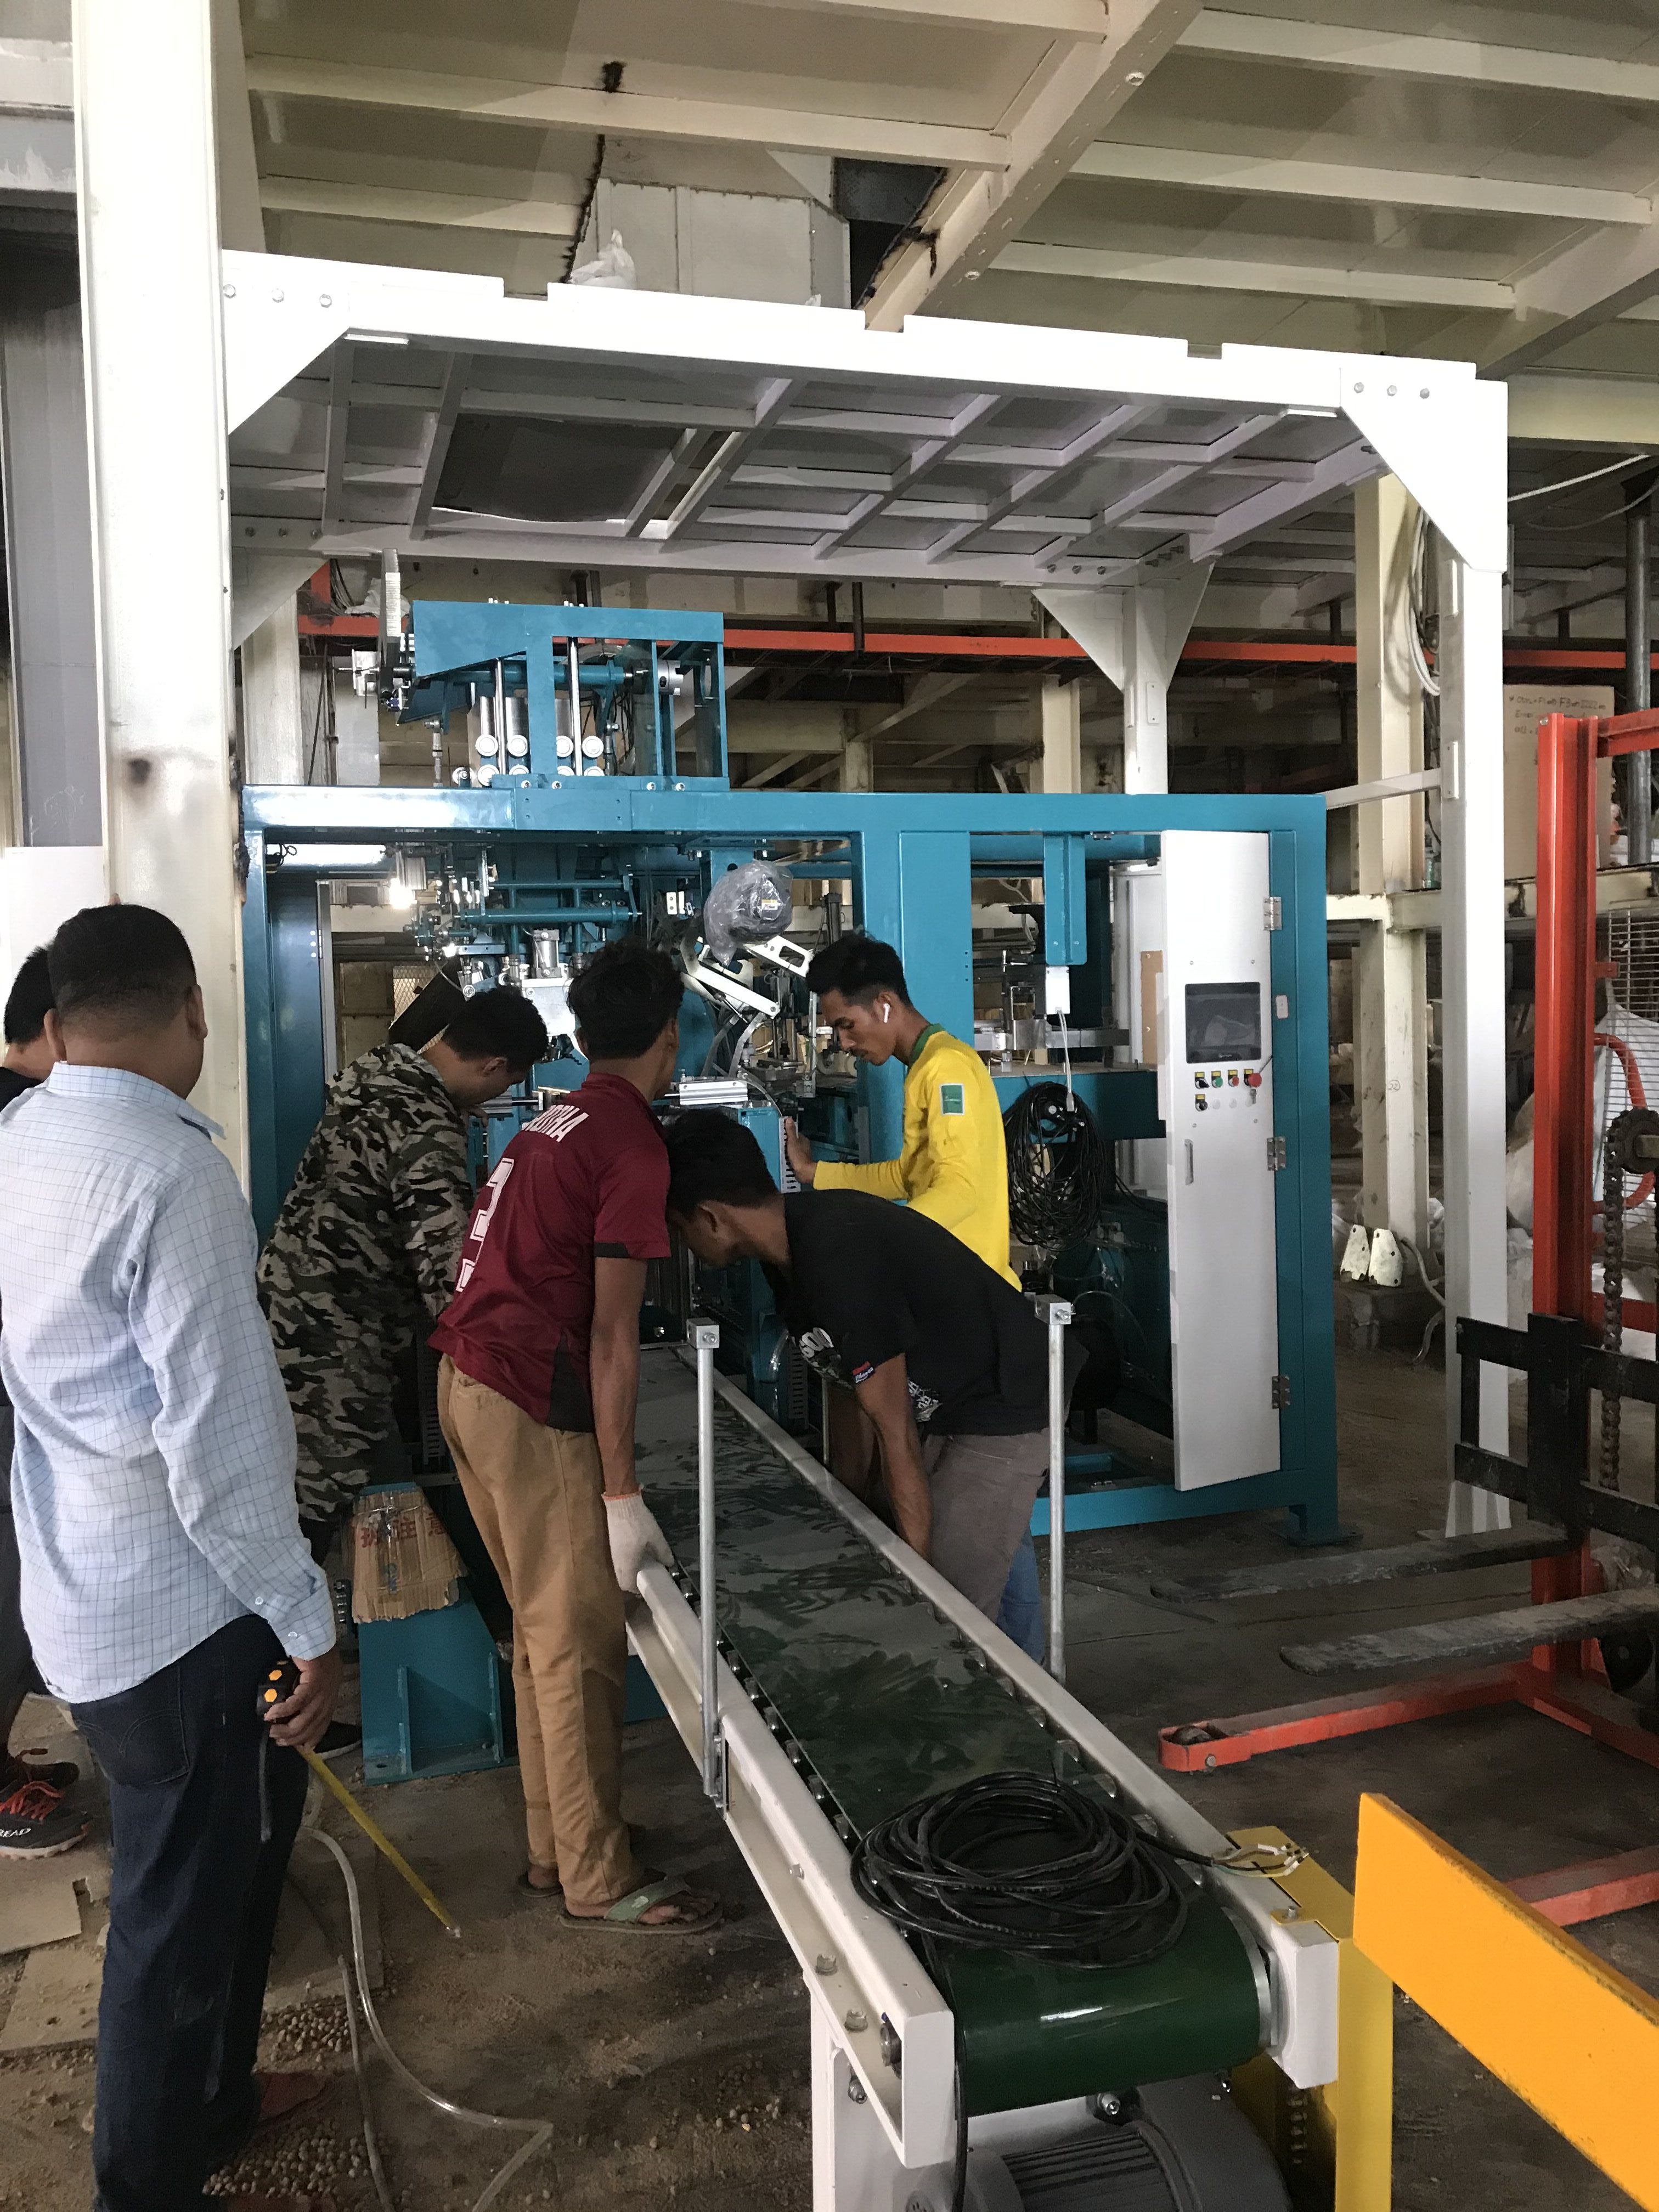 flax seed Chick Peas Lentils Bagging machine fully automated packing line for Bagging system fully automated packing line Textured Protein Bagging Machine Packing Machine bagging palletizing system